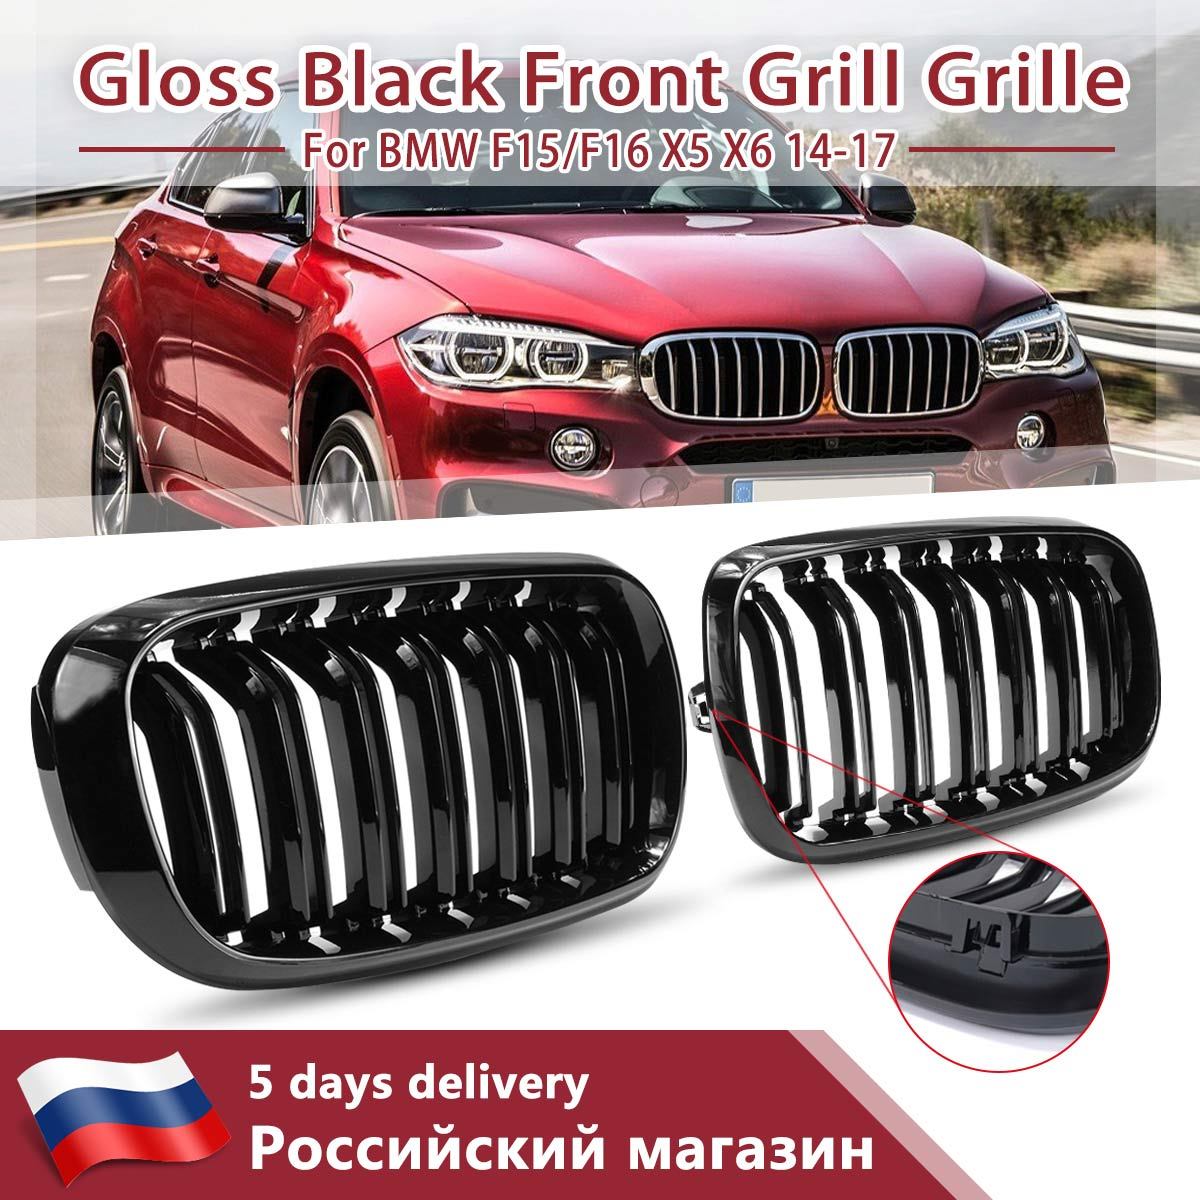 2Pcs Gloss/ Black Car 2 Slat Line Kidney Grille for BMW F15 F16 X5 X6 2014 2015 2016 2017 Car Styling Front Bumper Racing Grille|Racing Grills| |  - title=